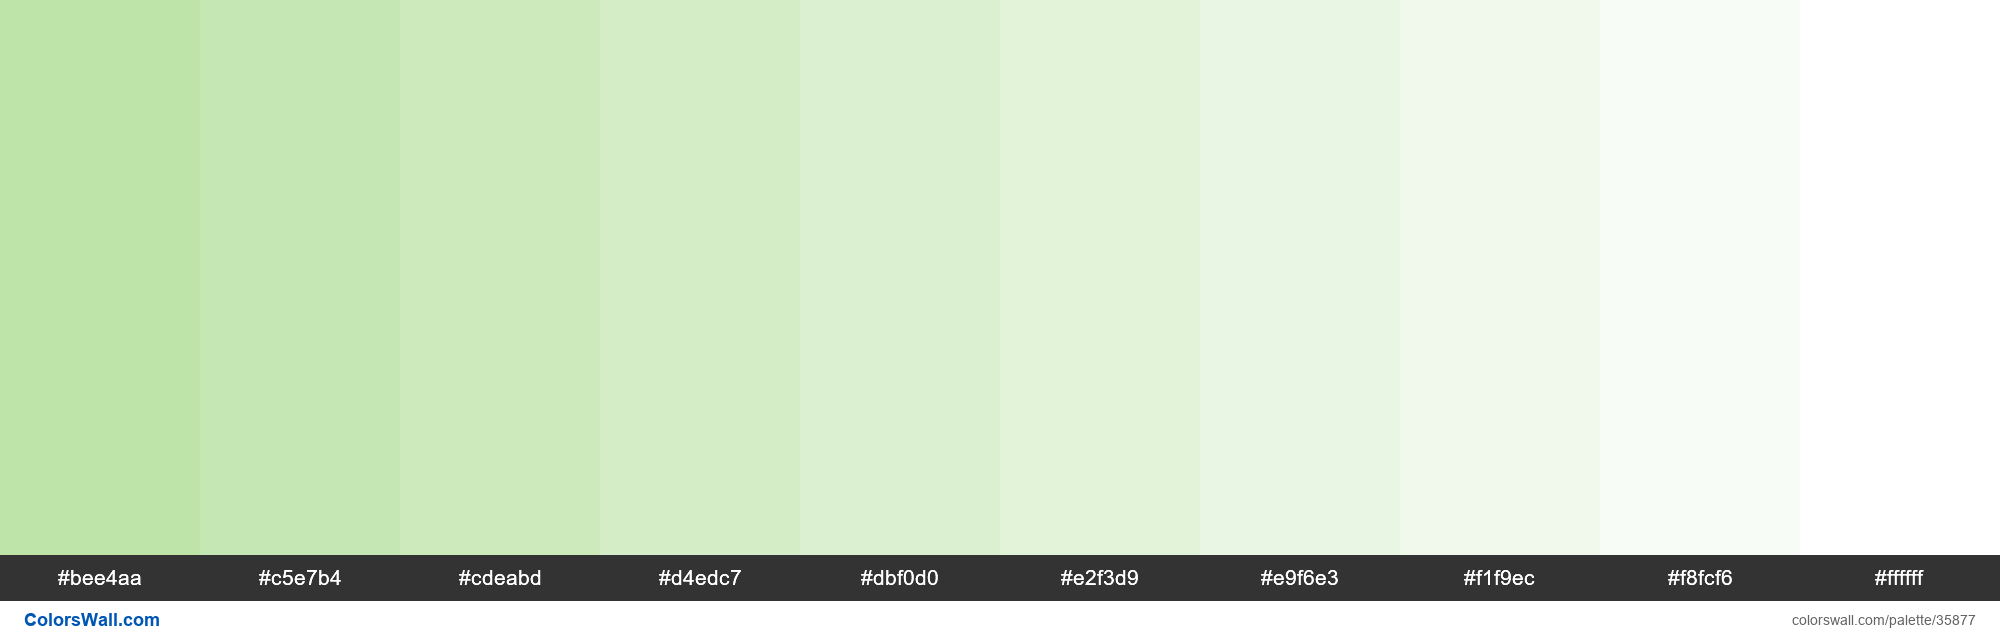 Tints XKCD Color light grey green #b7e1a1 hex - #35877